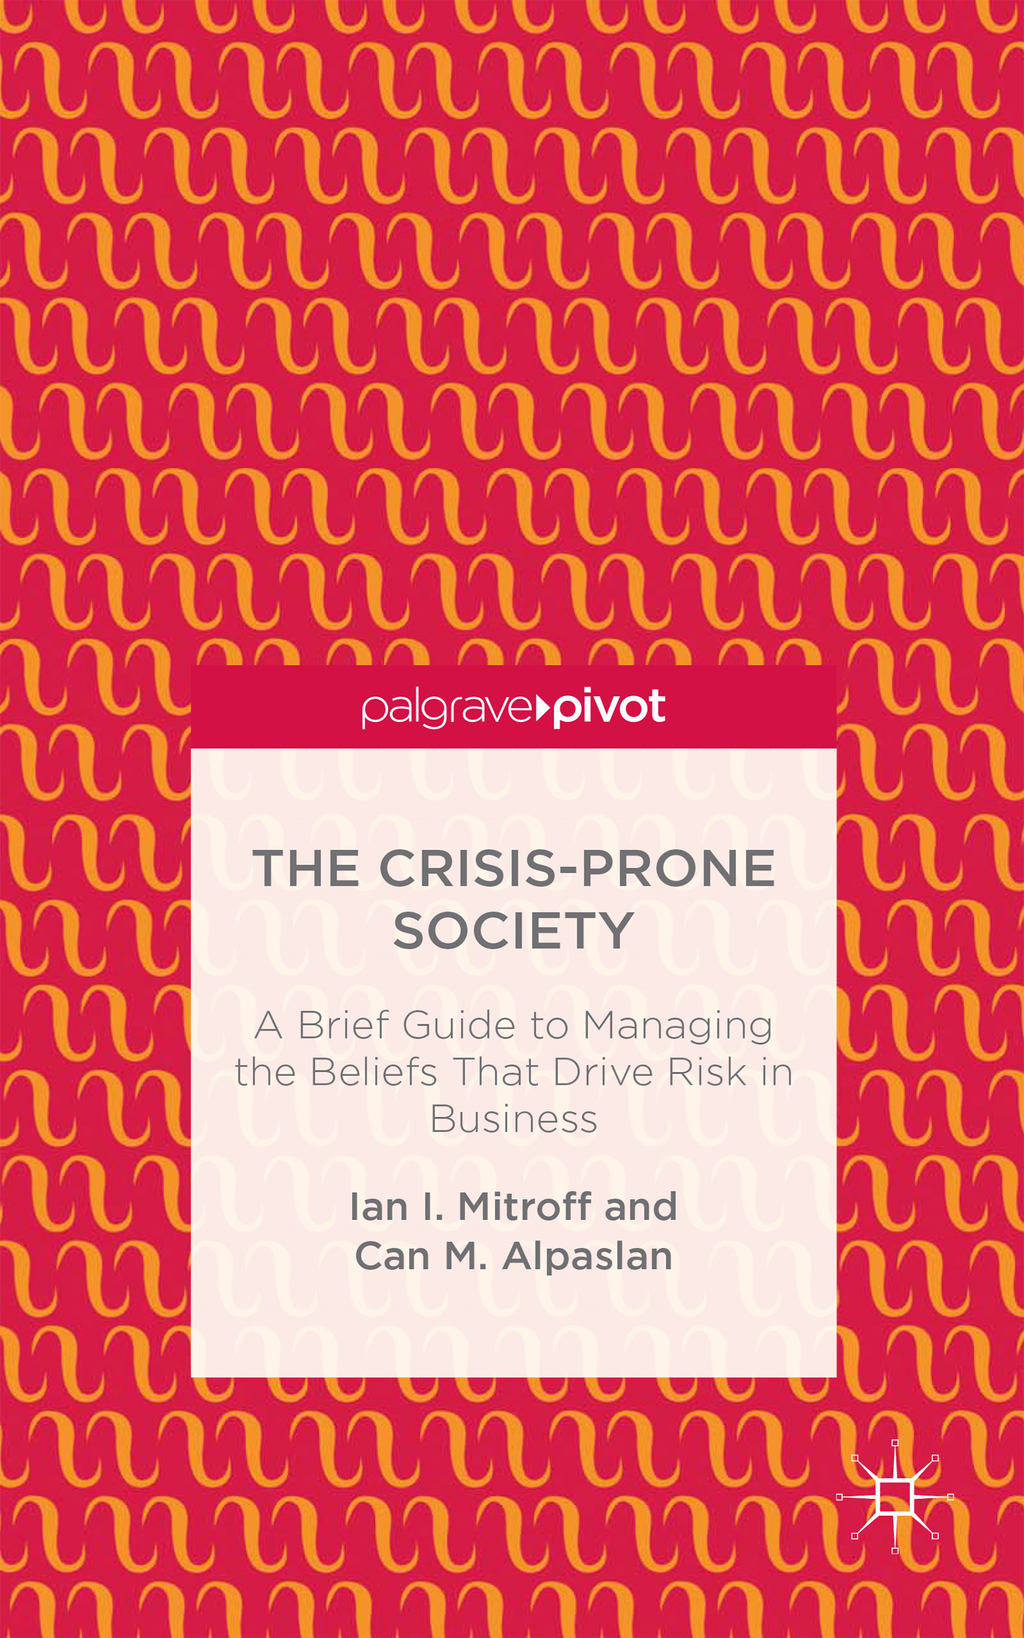 The Crisis-Prone Society A Brief Guide to Managing the Beliefs that Drive Risk in Business